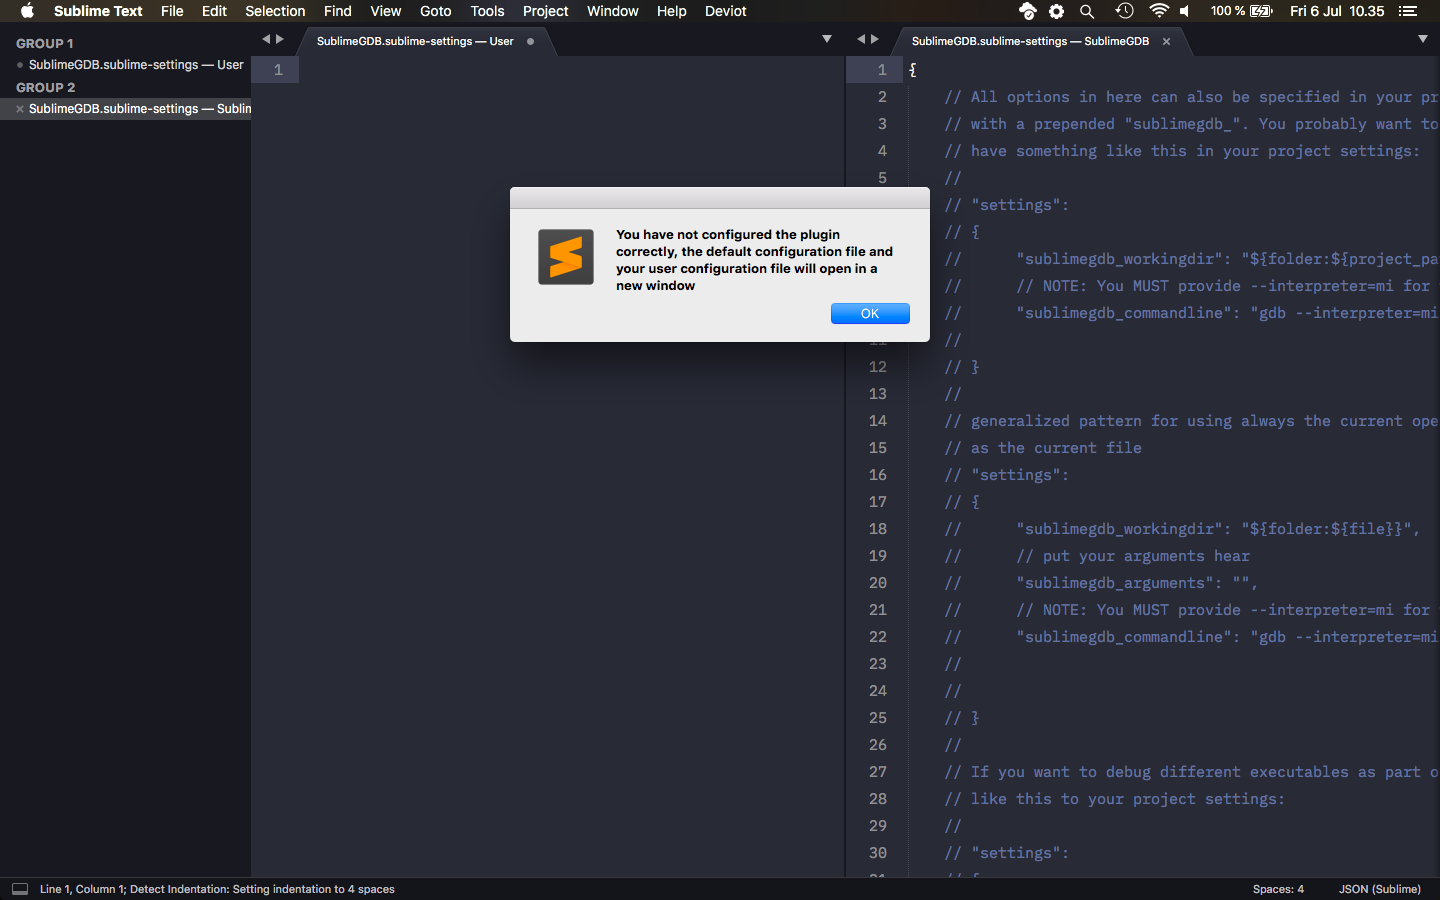 PIO unified debugger and sublimetext - PIO Unified Debugger